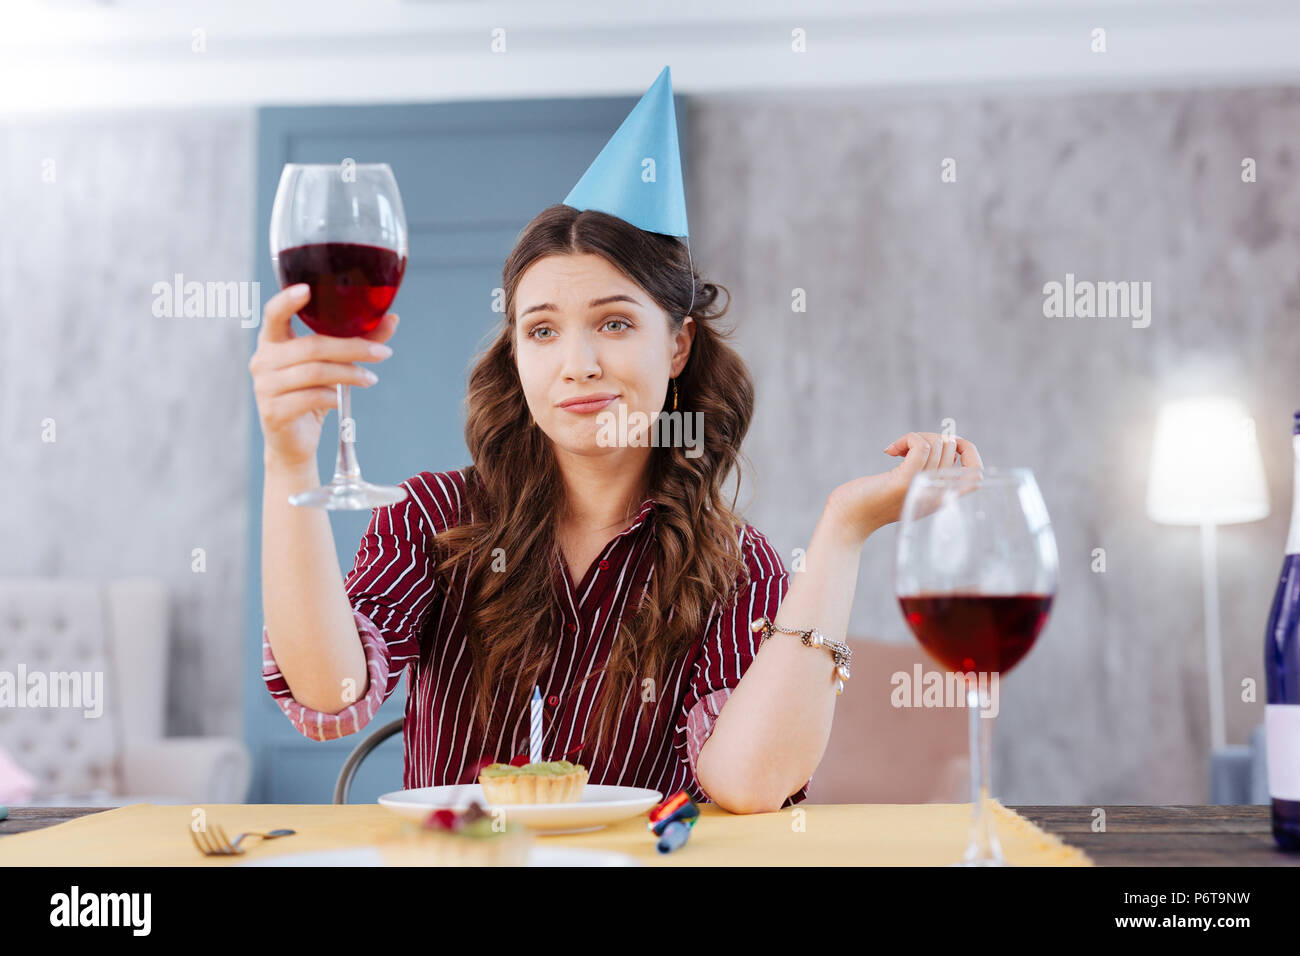 Woman making funny face tout en fréquentant d'anniversaire Photo Stock